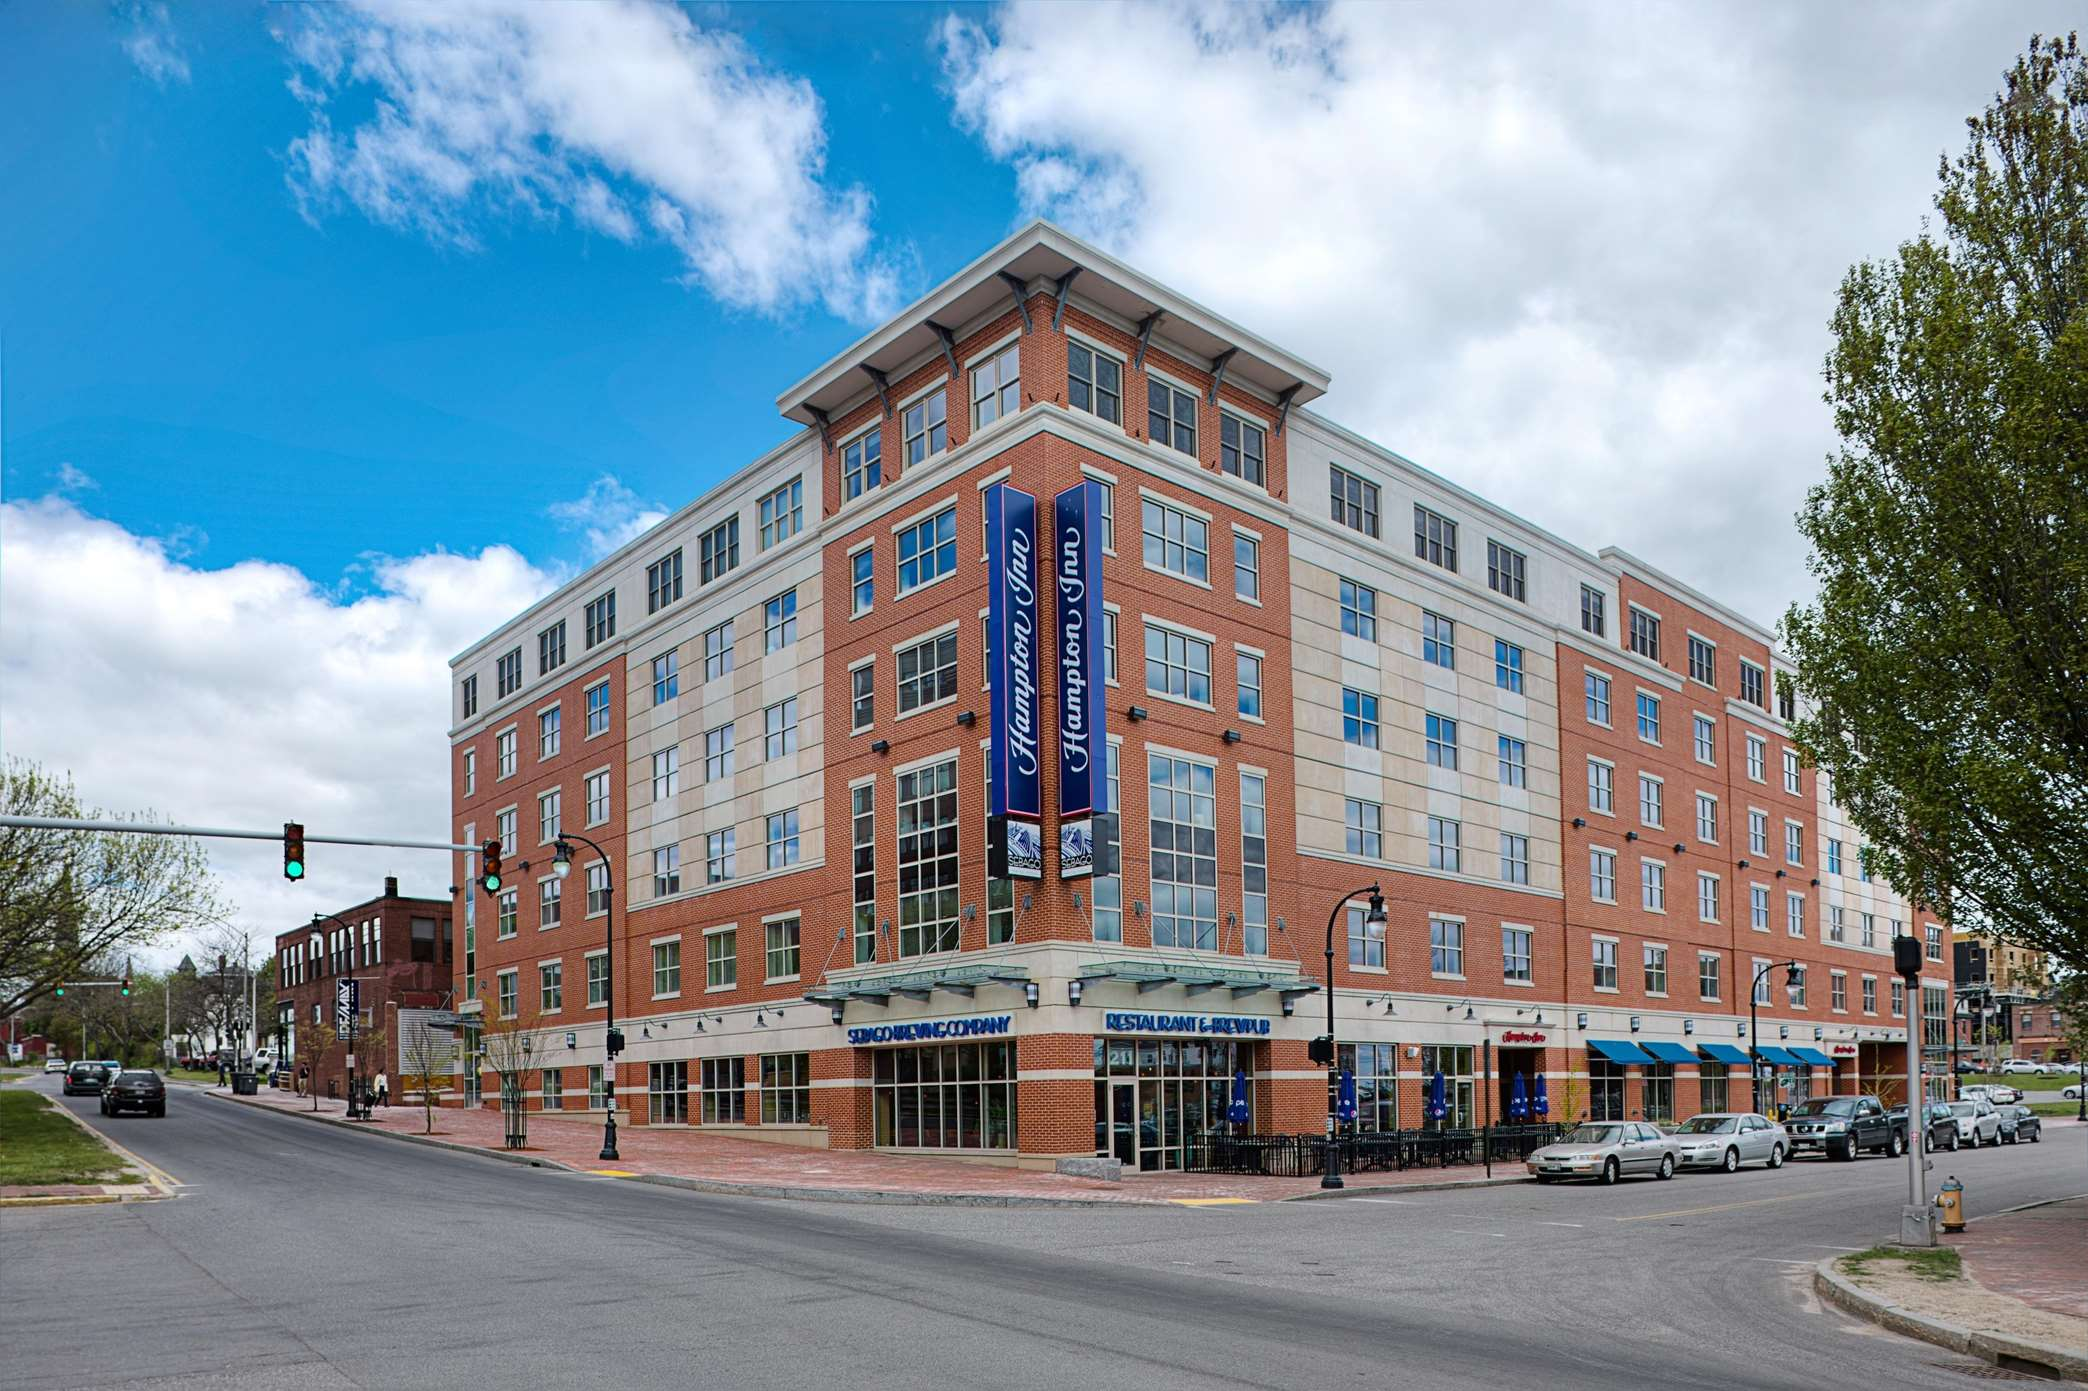 Portland Maine Hotels Near Waterfront